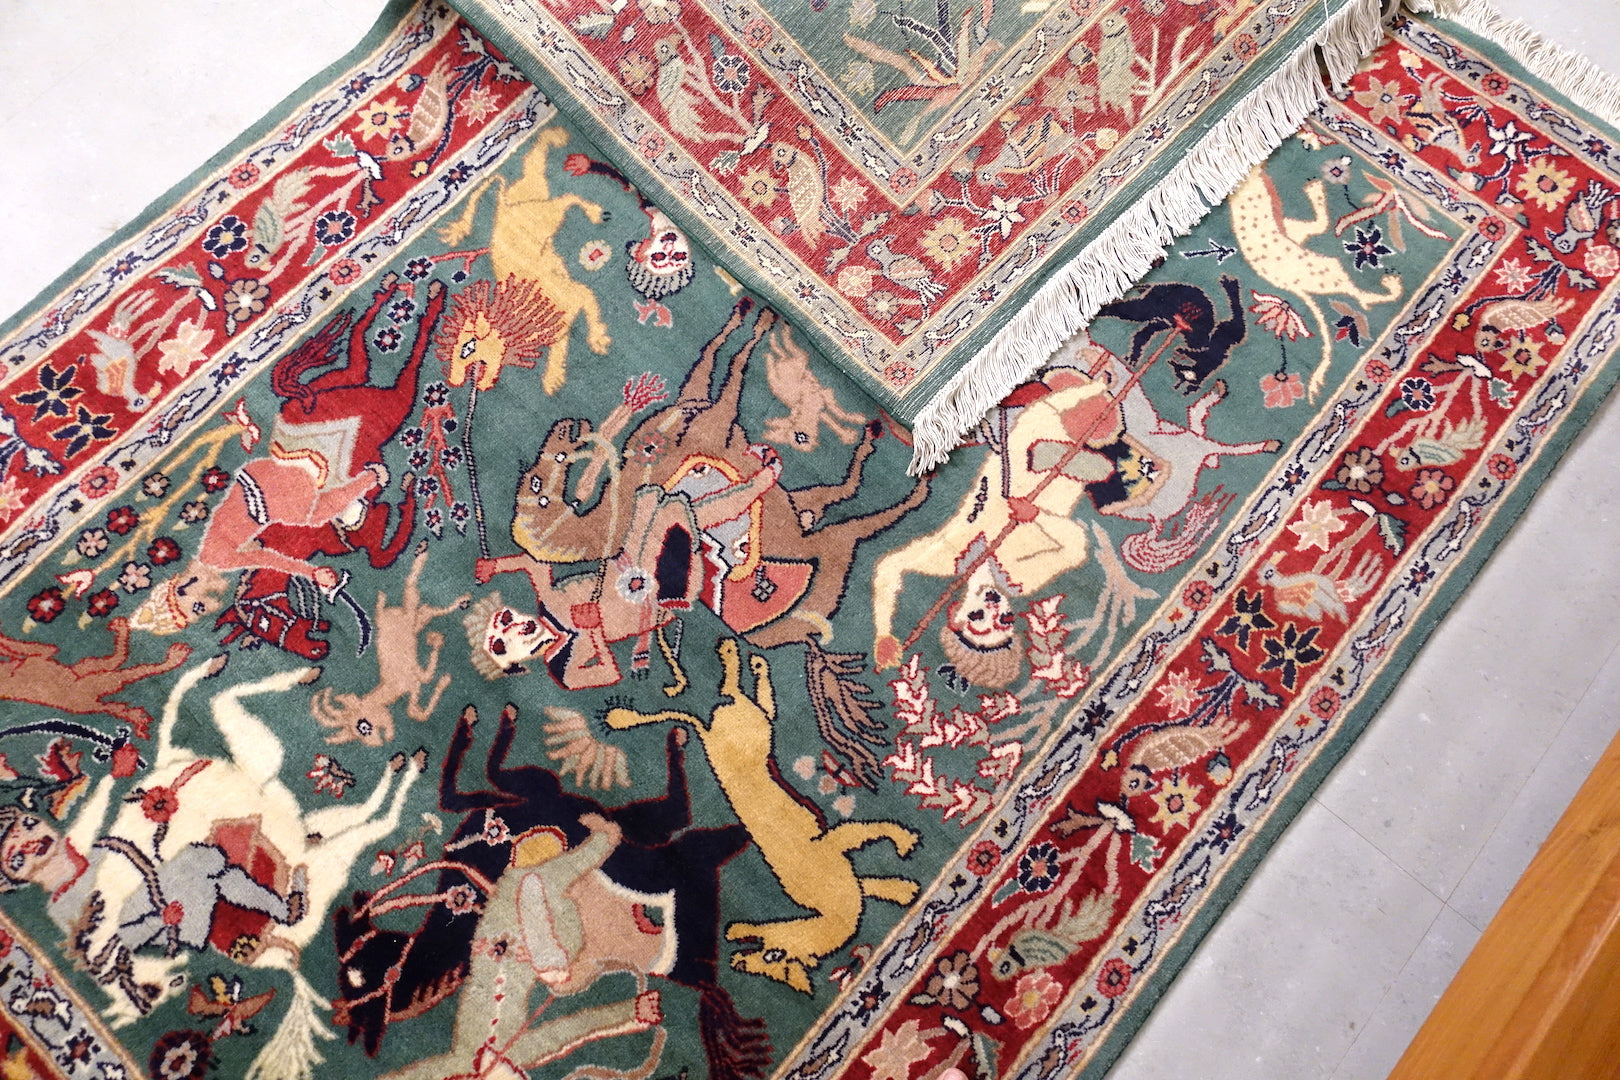 It is a 4 feet by 6 feet persian wool rug. It depicts a hunting scene and the colours used are gree,beige,red and black.